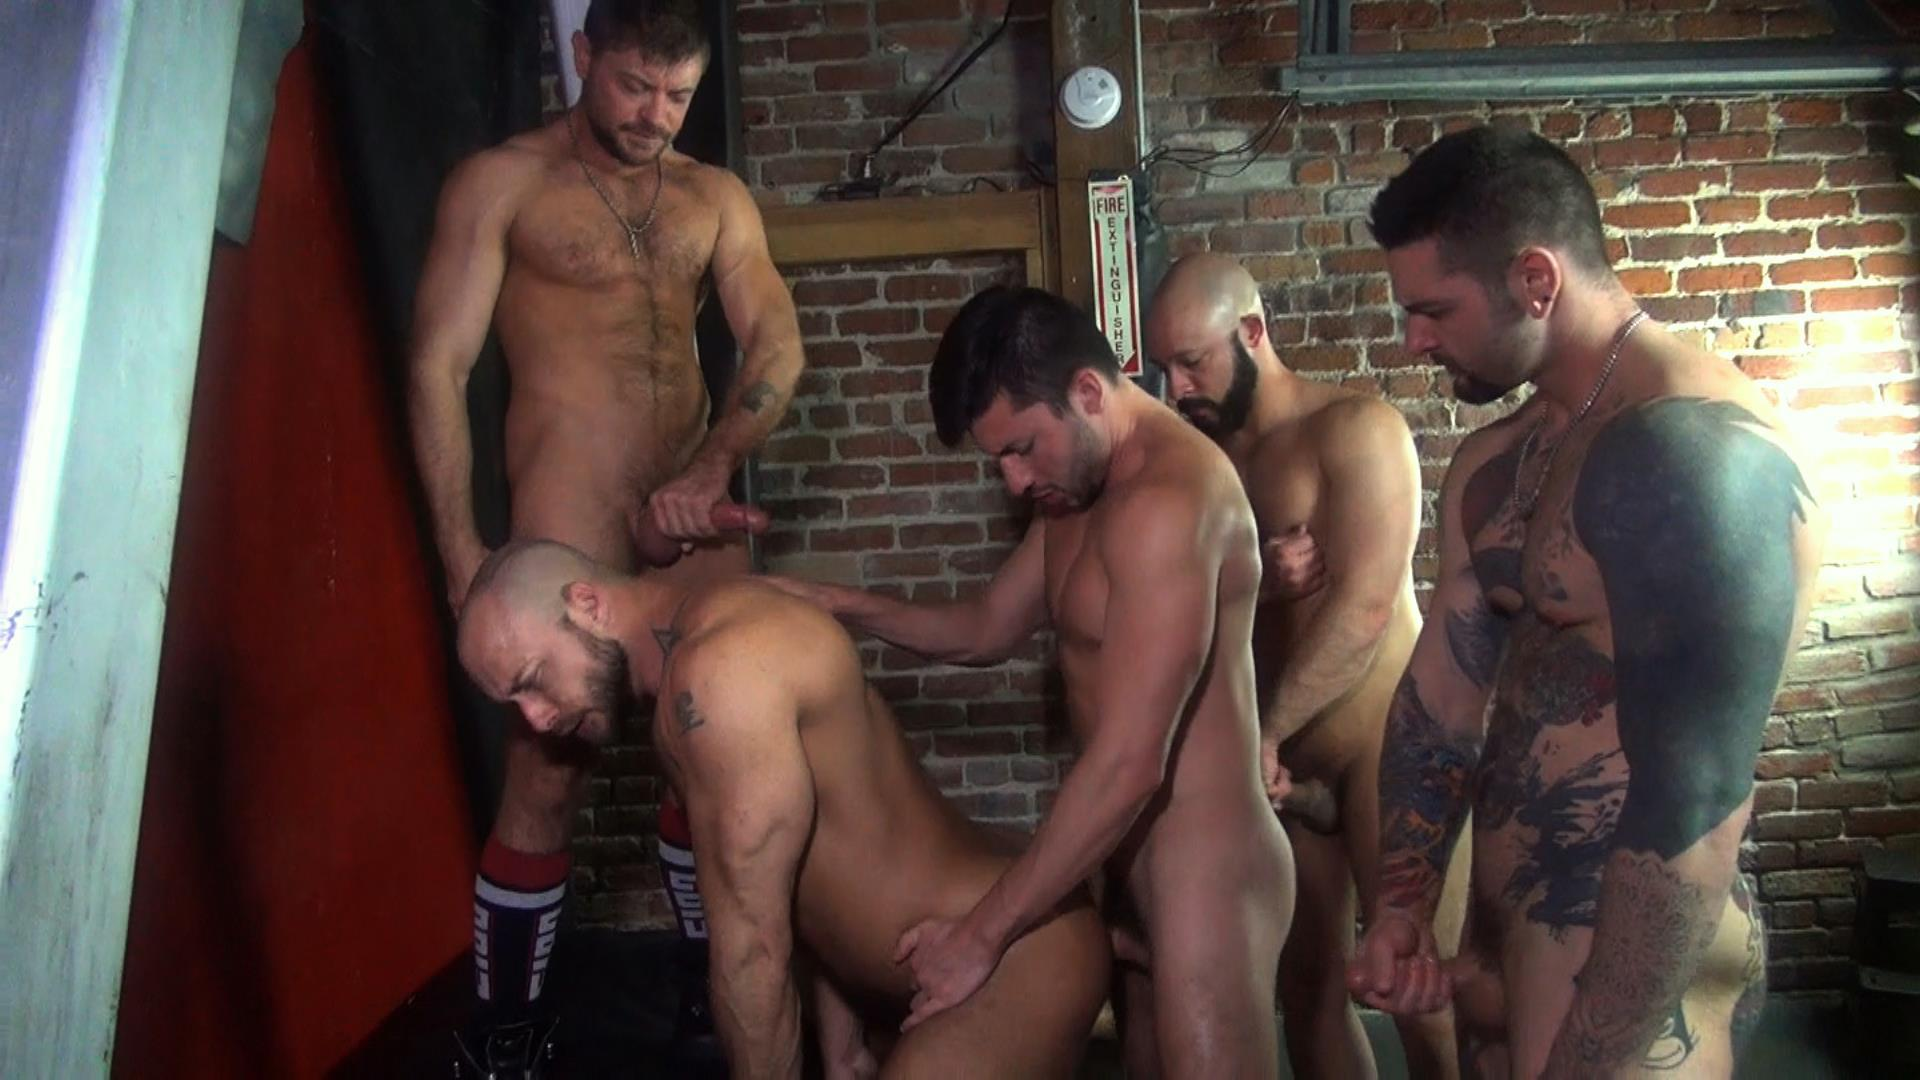 Raw-Fuck-Club-Dylan-Strokes-and-Scott-DeMarco-and-Jack-Andy-and-Jessie-Colter-and-Teddy-Bryce-Bareback-Sex-Video-01 Jessie Colter's First Bareback Gangbang At A Sleazy Bathhouse